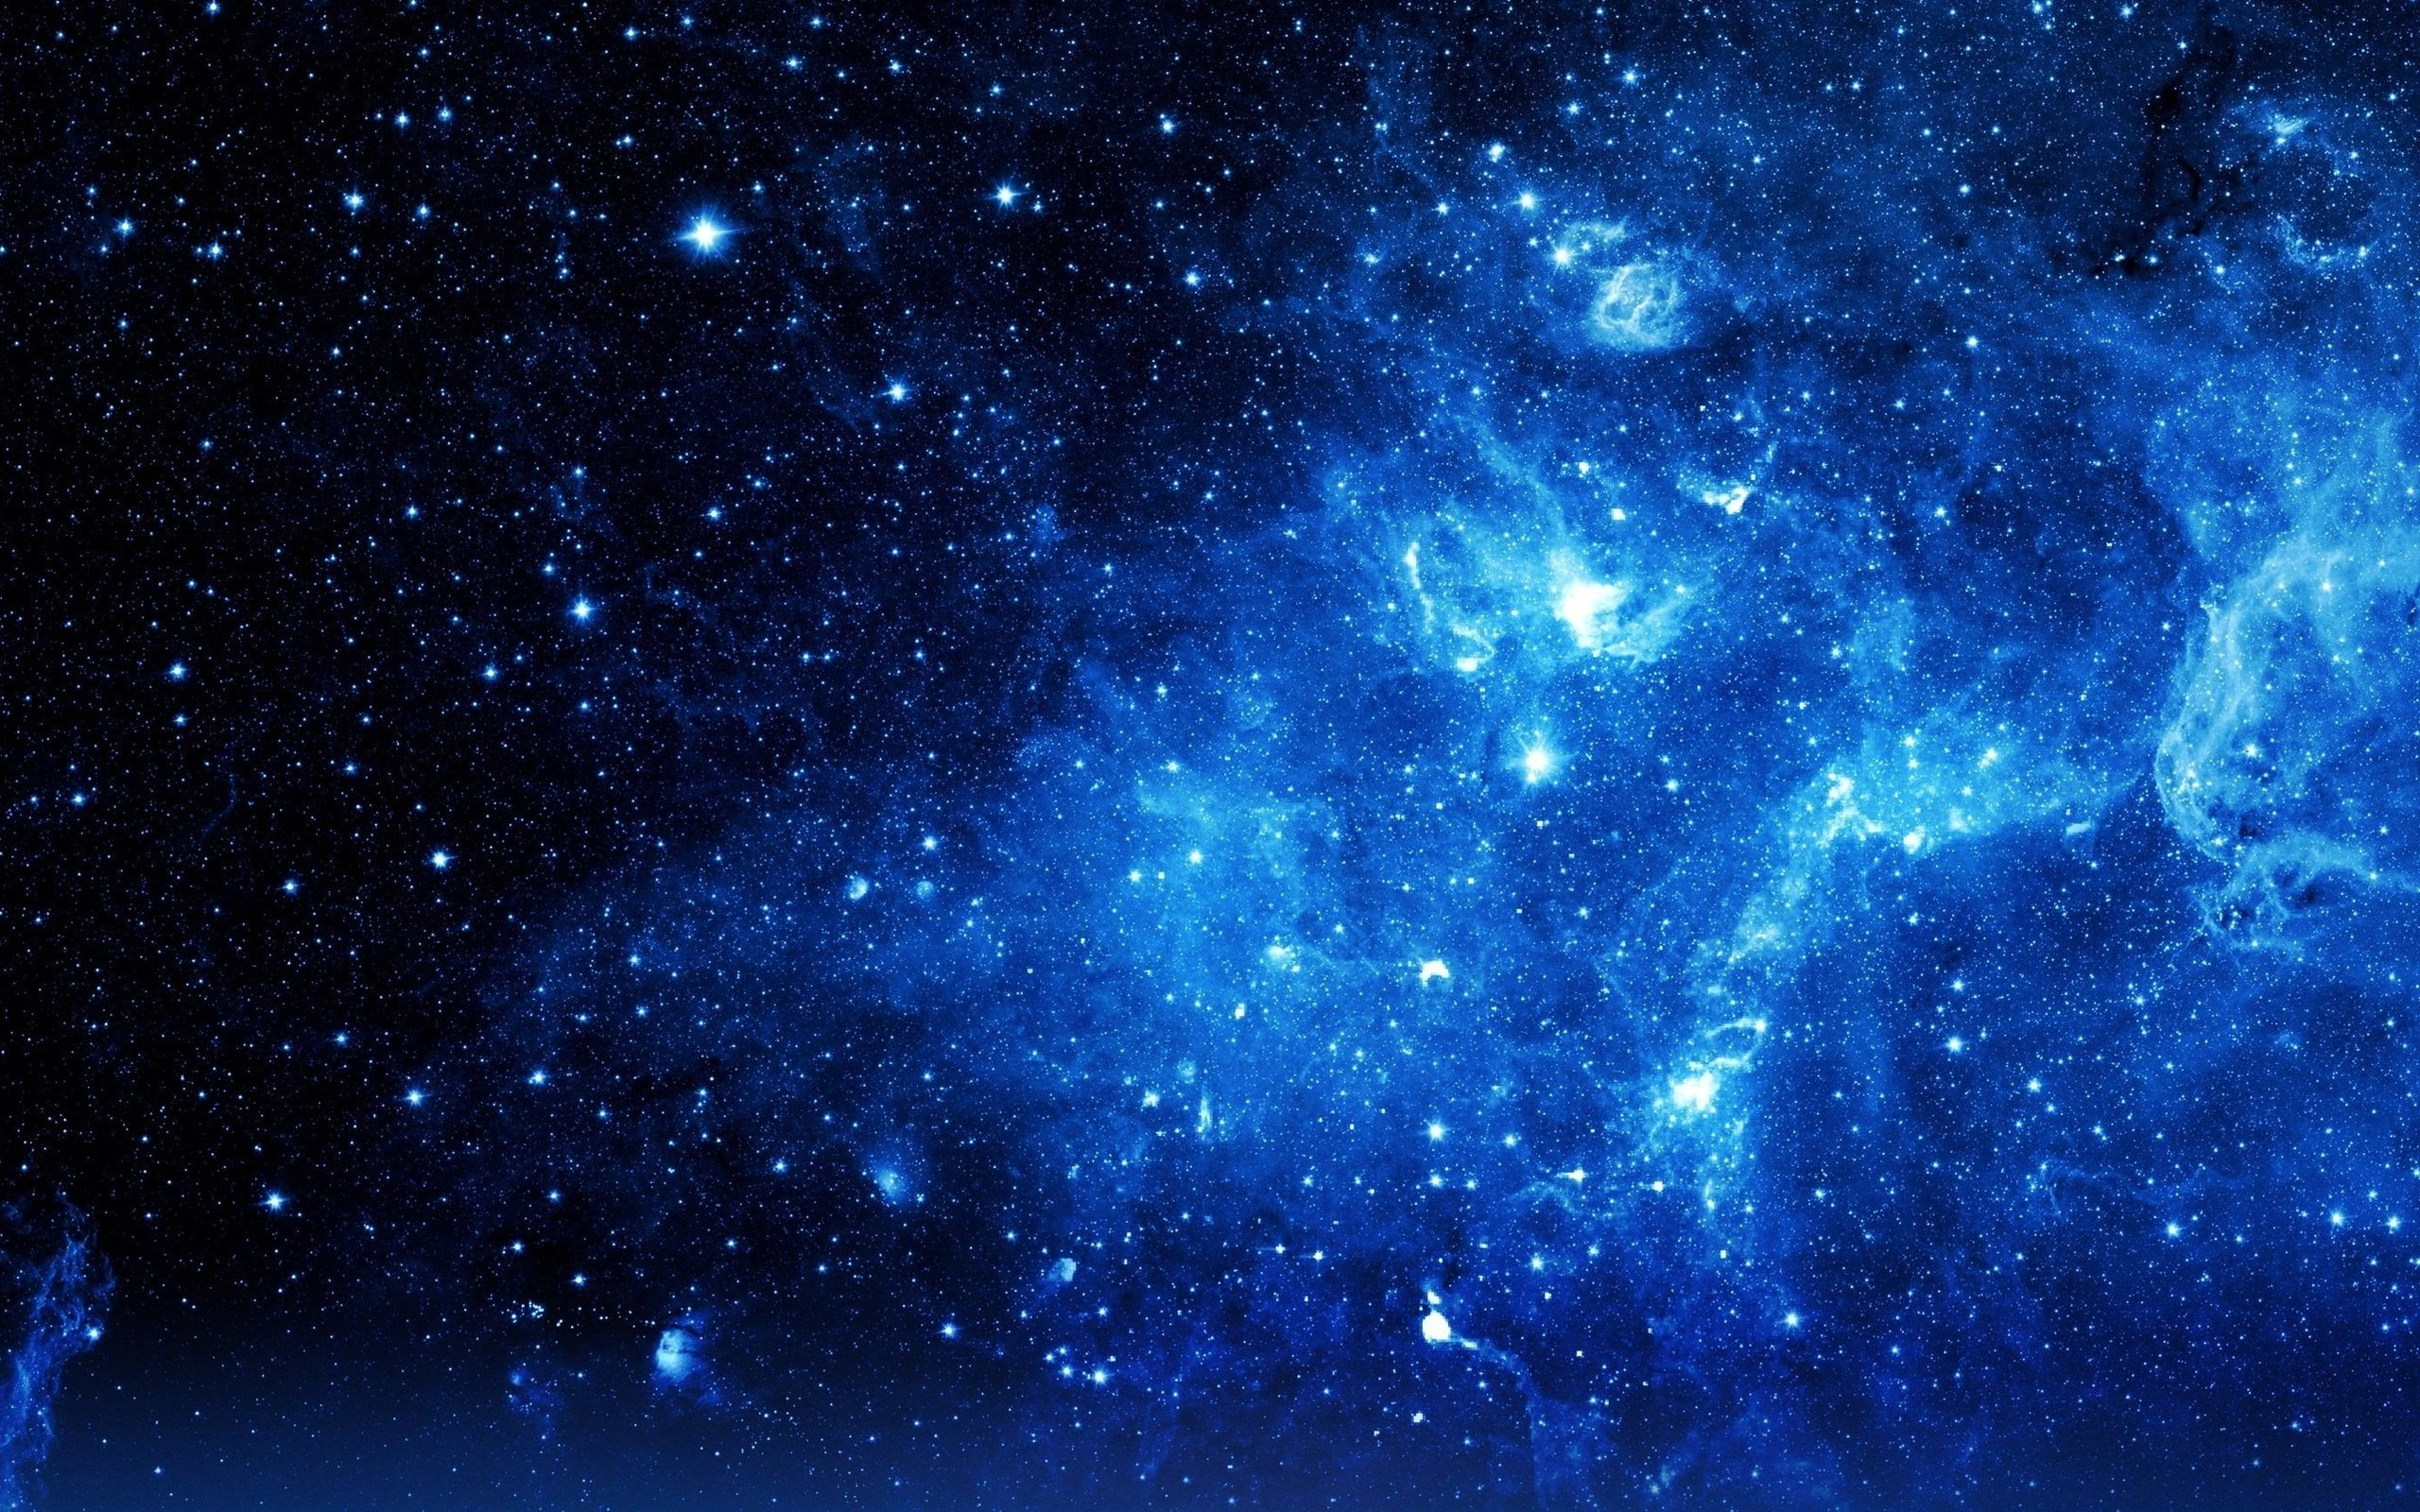 Blue Galaxy wallpaper Blue galaxy wallpaper, Galaxy